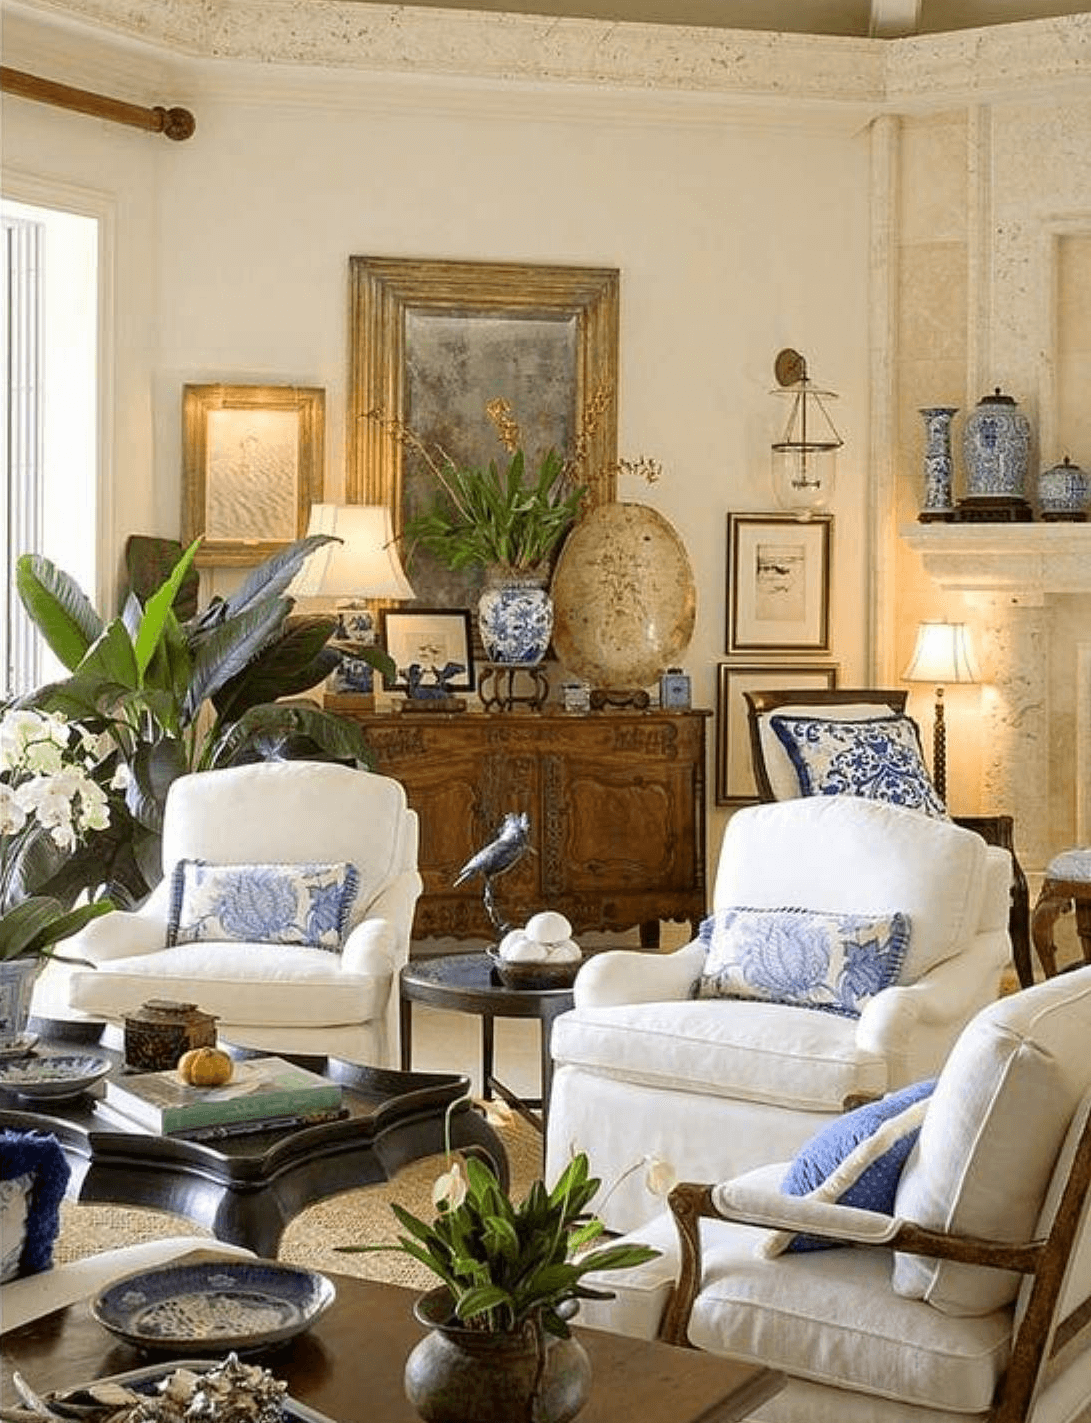 Traditional home decor ideas for living room using jars and flower pots